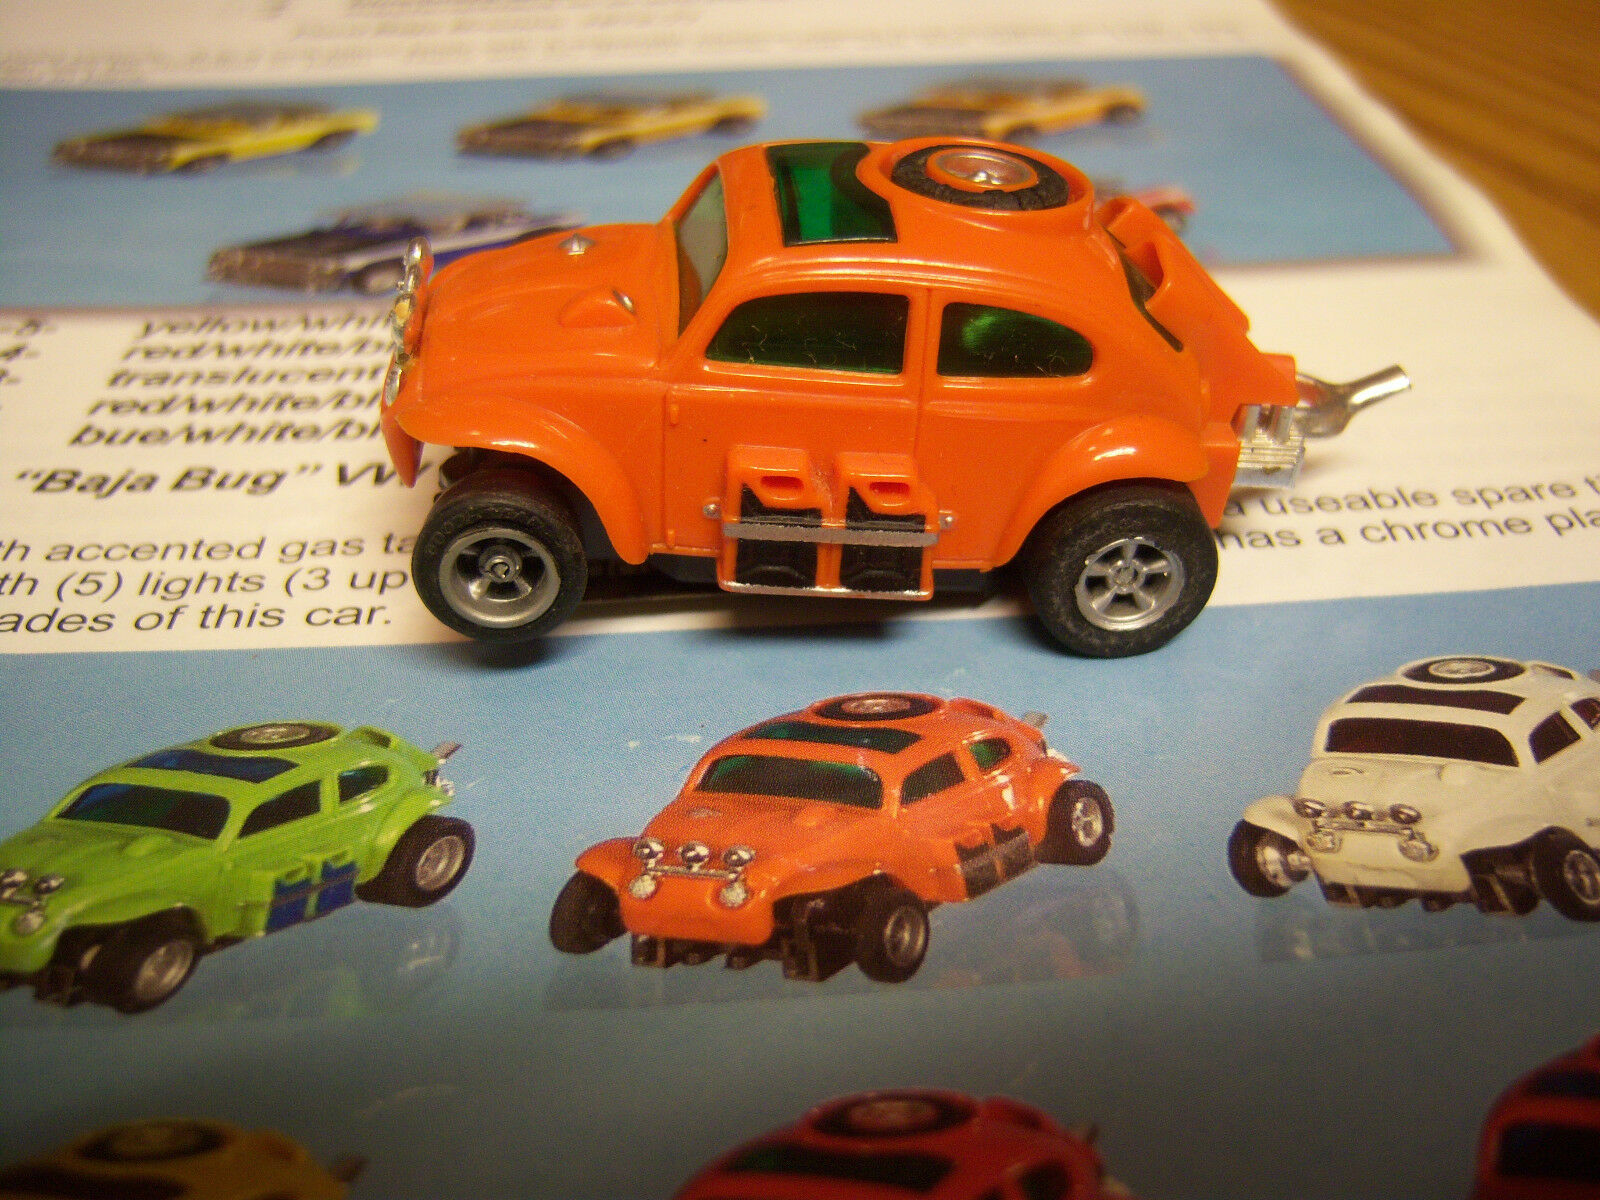 AFX collectionneurs L @ @ K RARE & HARD TO FIND Orange Foncé VW Baja Bug Model Motoring